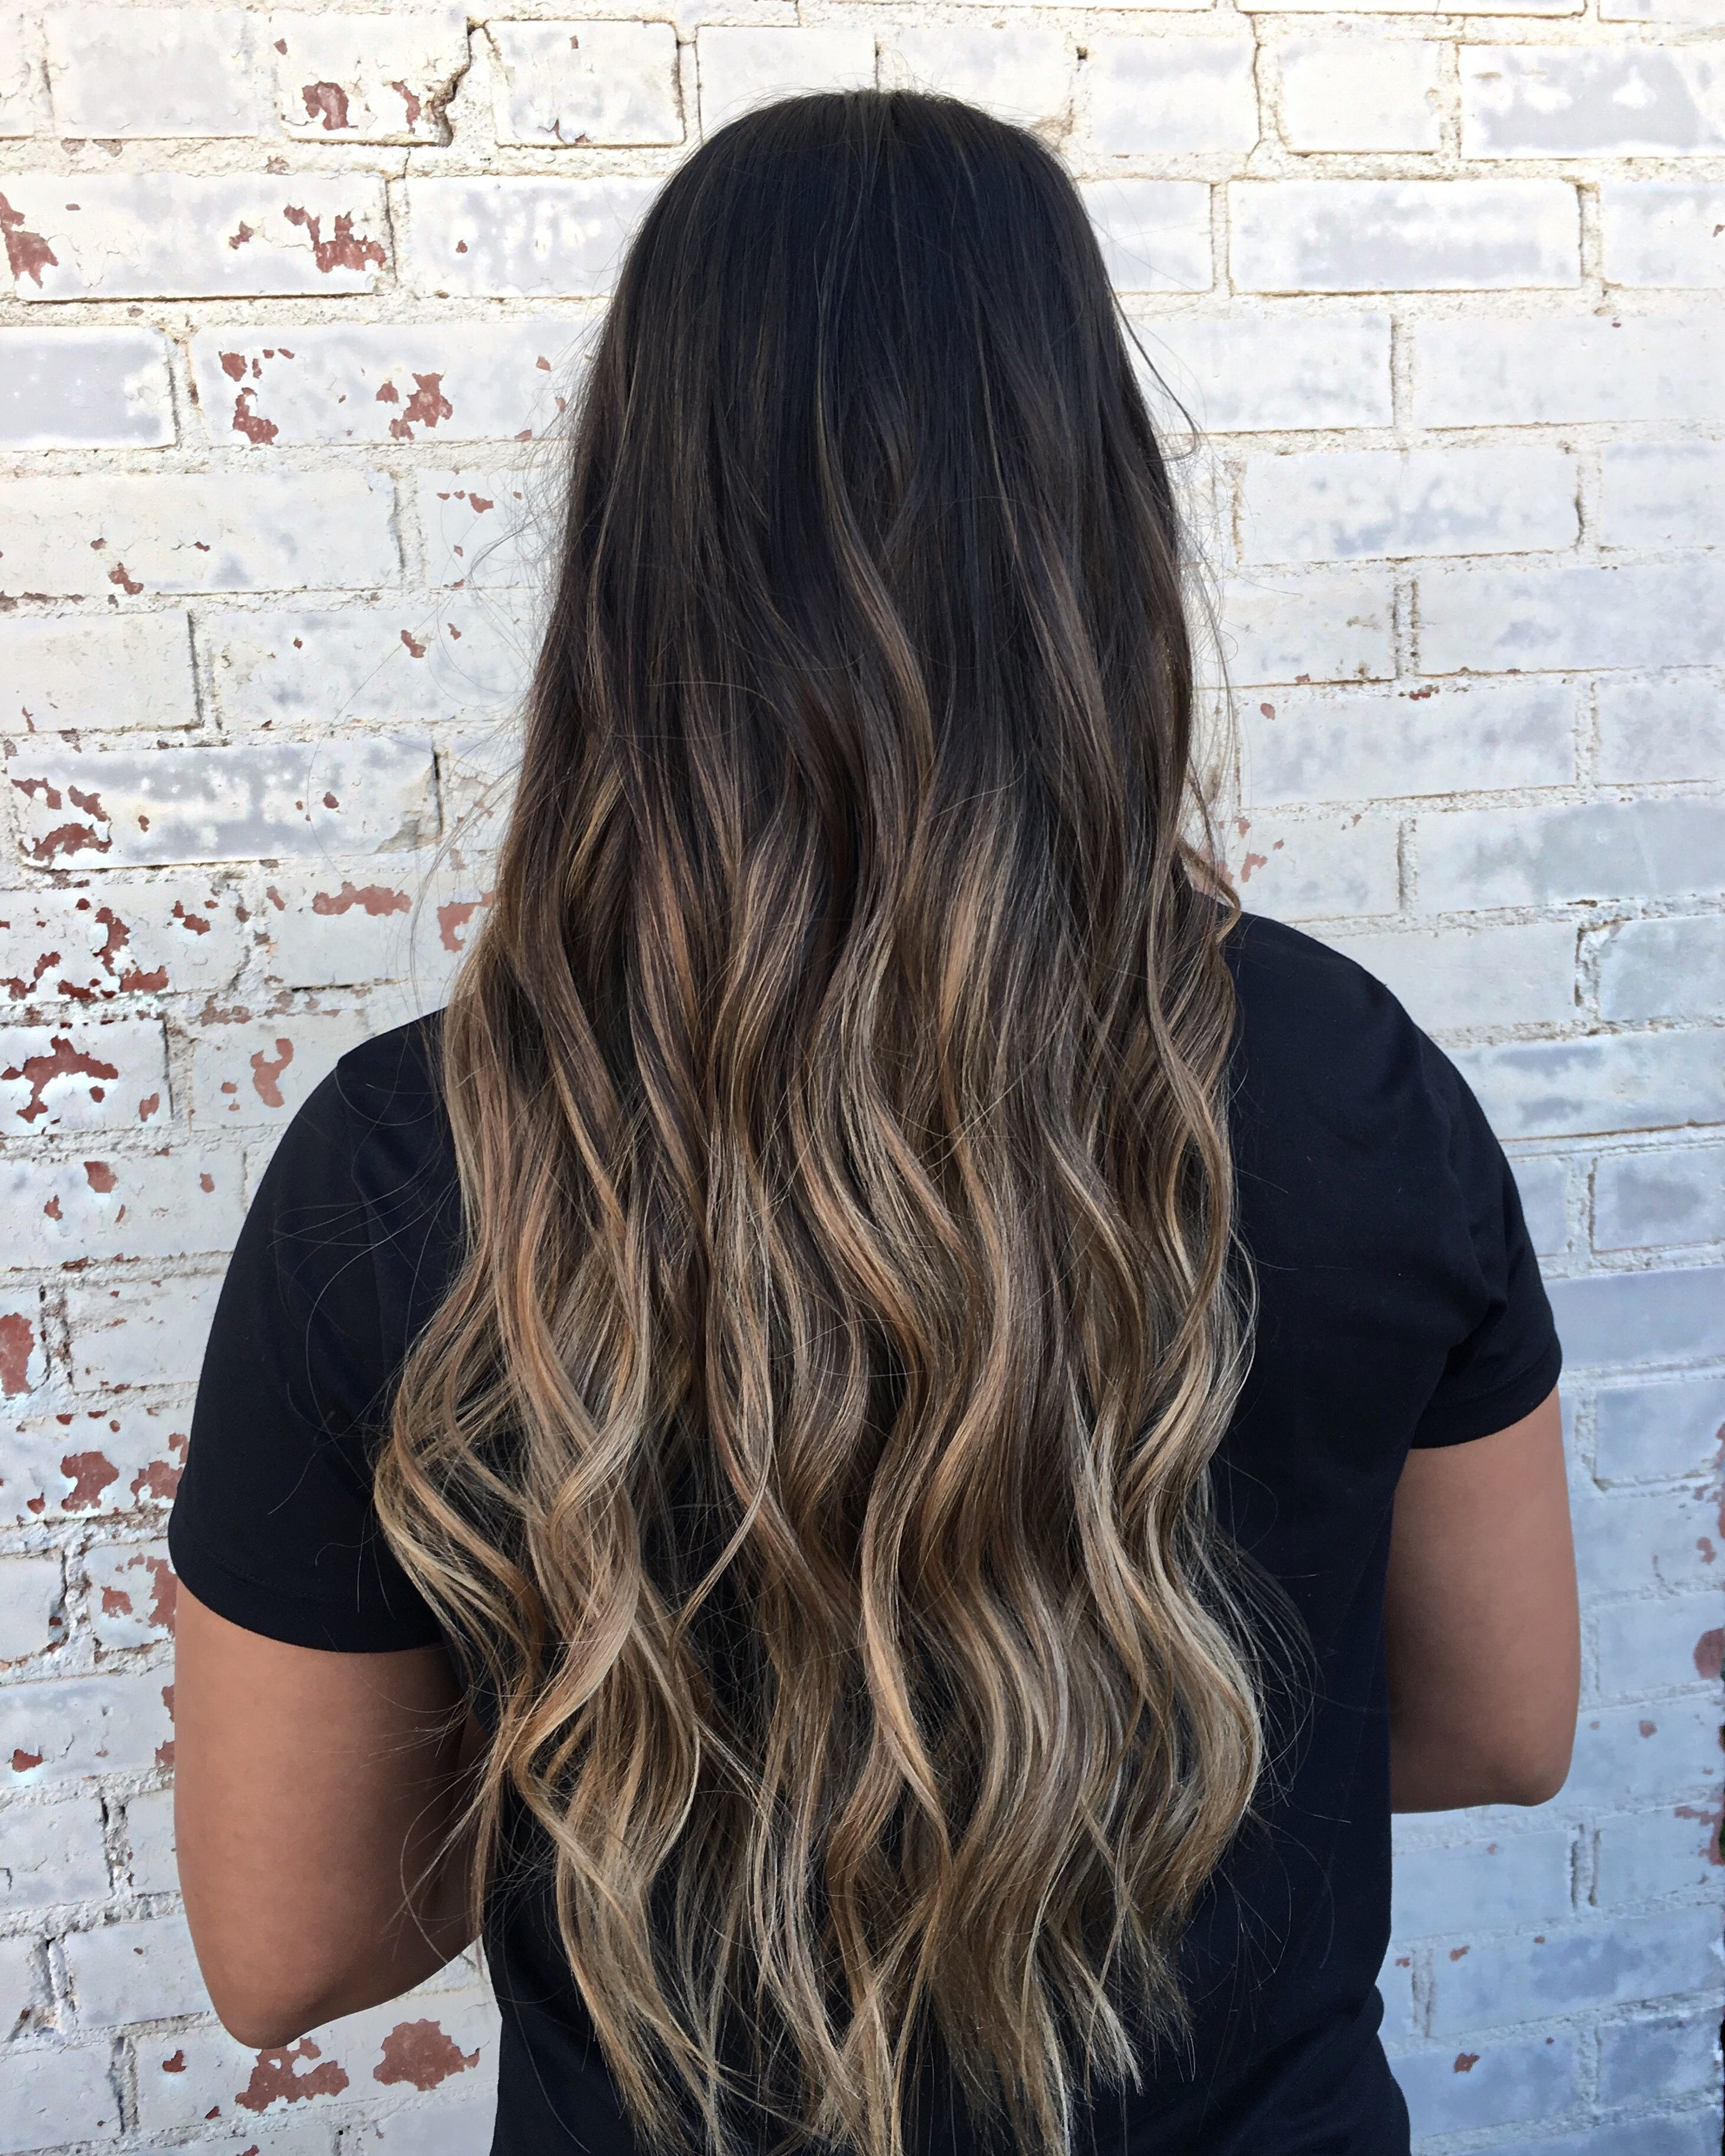 Dark Hair Brown Hair Blonde Highlights Balayage Ombre Long